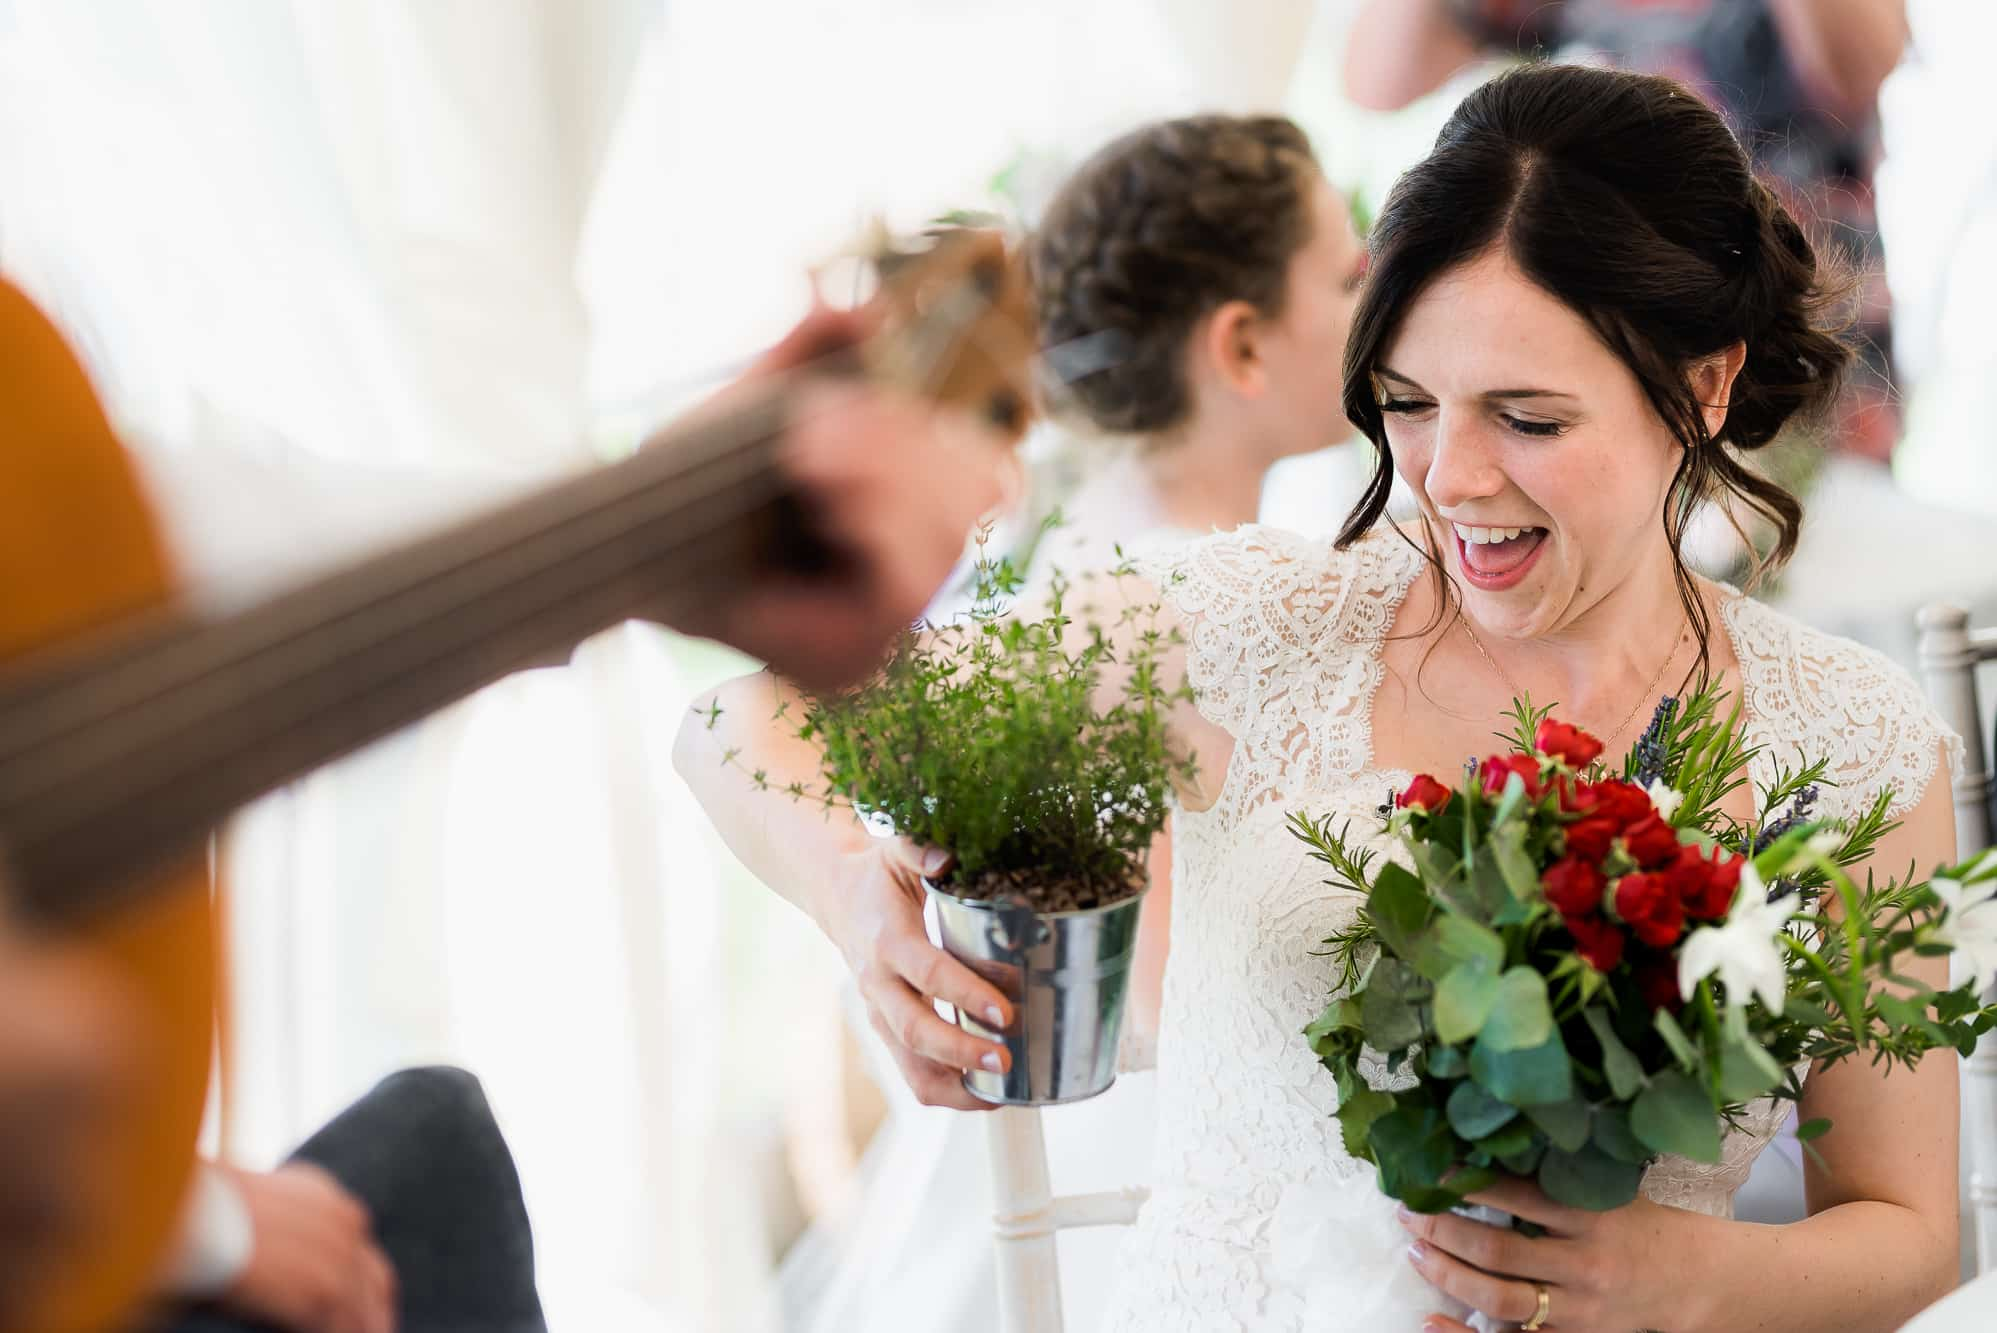 Bride laughing holding plant pots